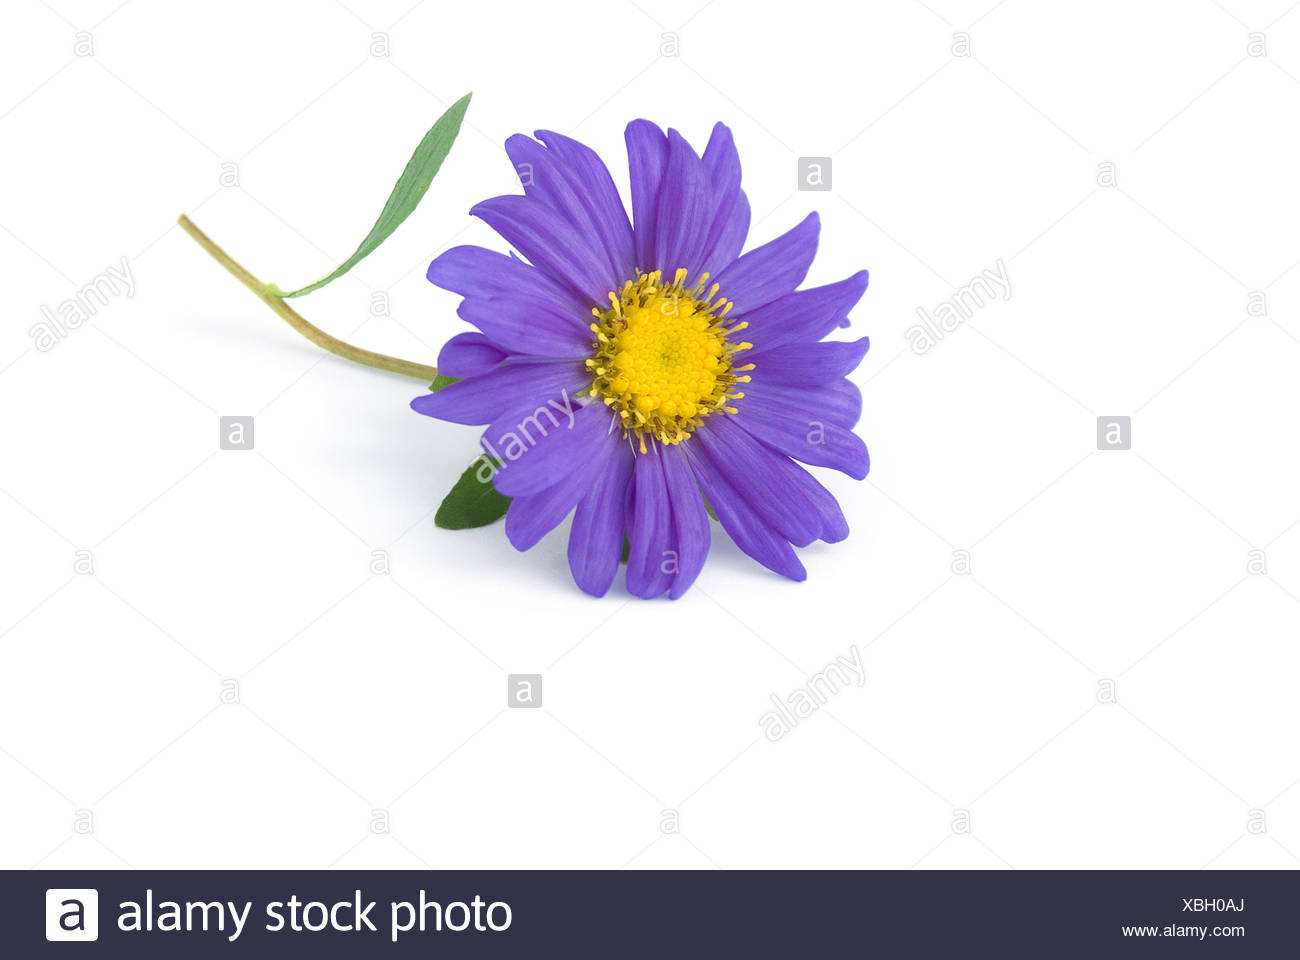 Aster on white background - Stock Image